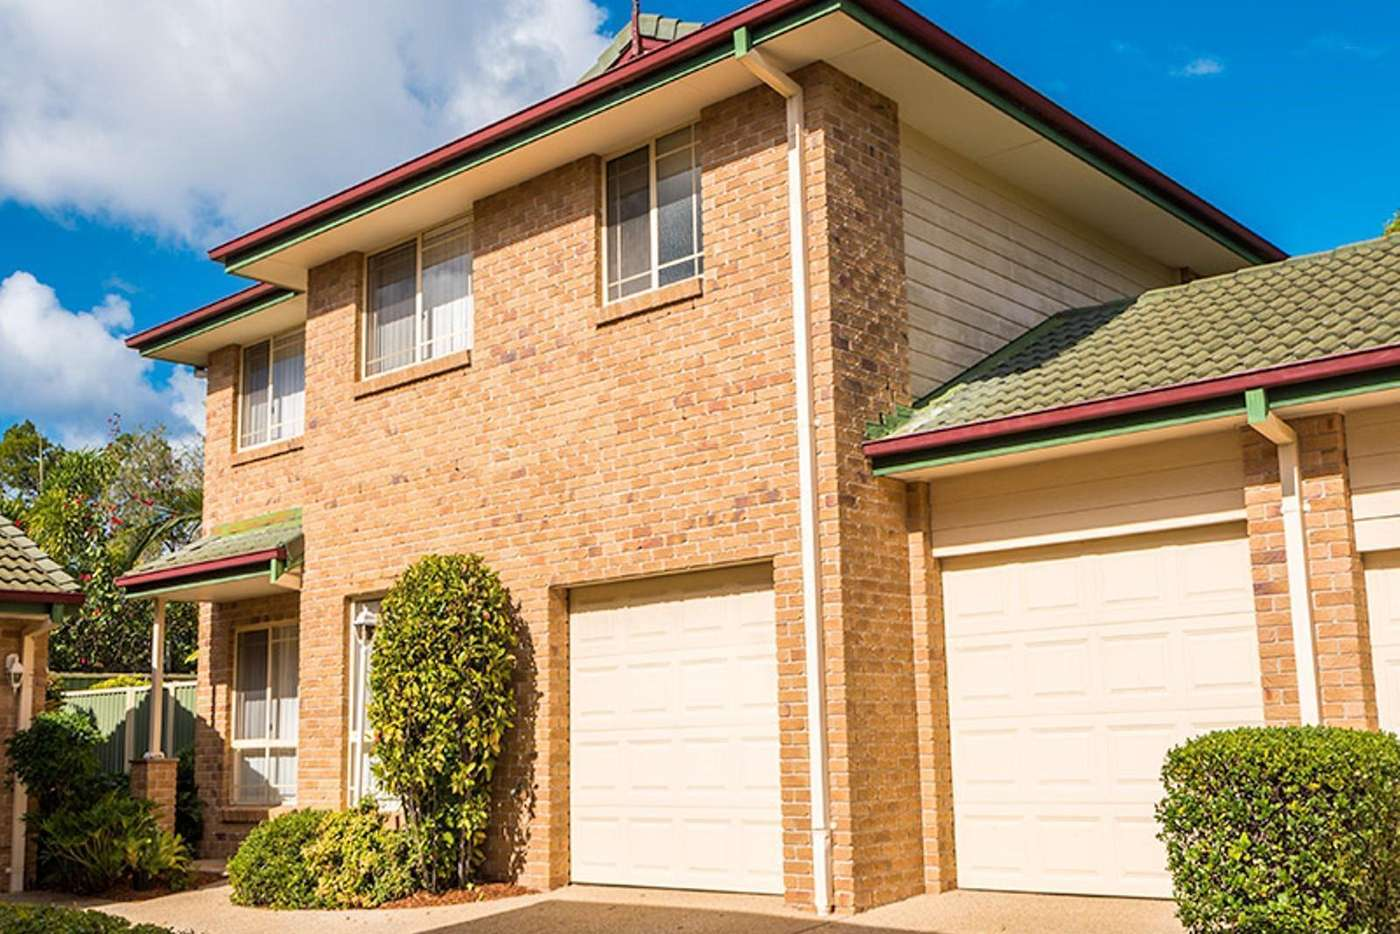 Main view of Homely house listing, 4/18 Charlton Street, Southport QLD 4215